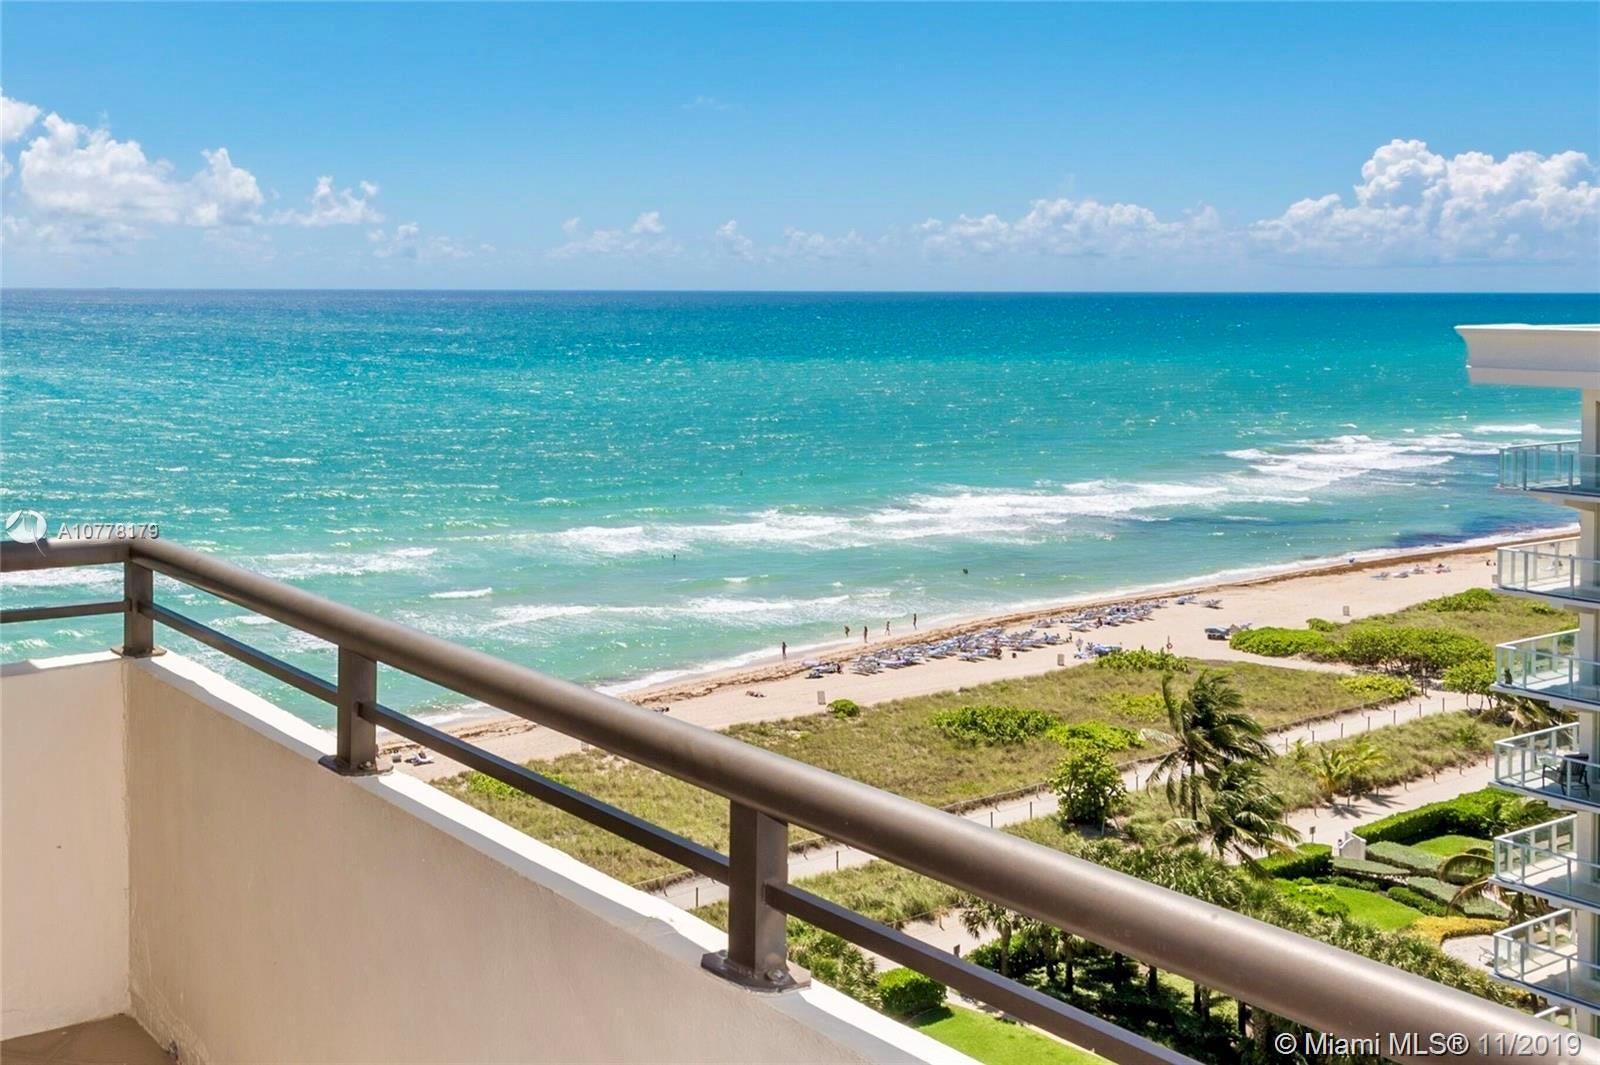 PENTHOUSE condo with unobstructed views to the ocean facing south east.Very large 1 bedroom with hug